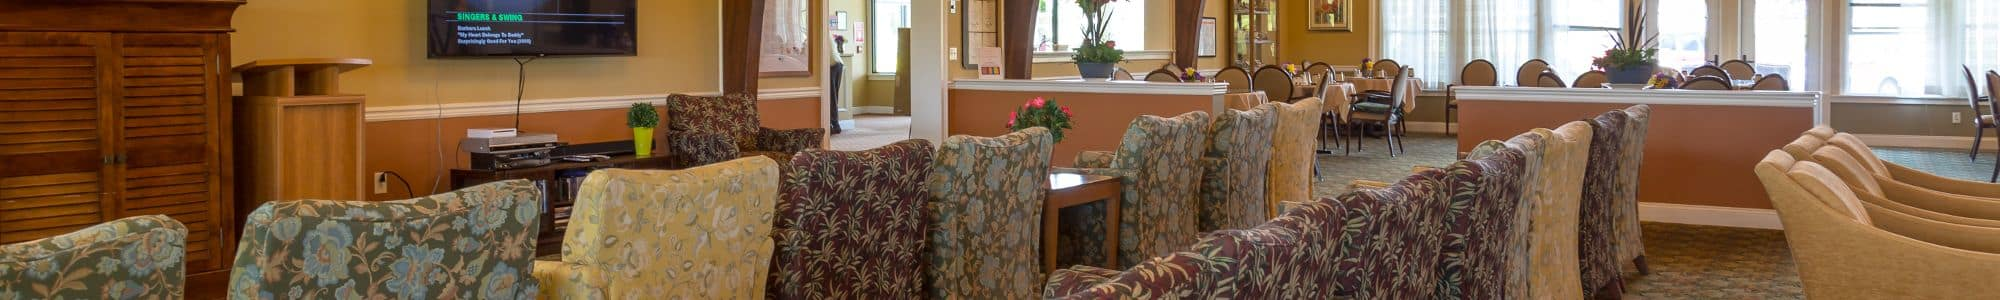 Apartments offered at Bentley Assisted Living at Branchville in Branchville